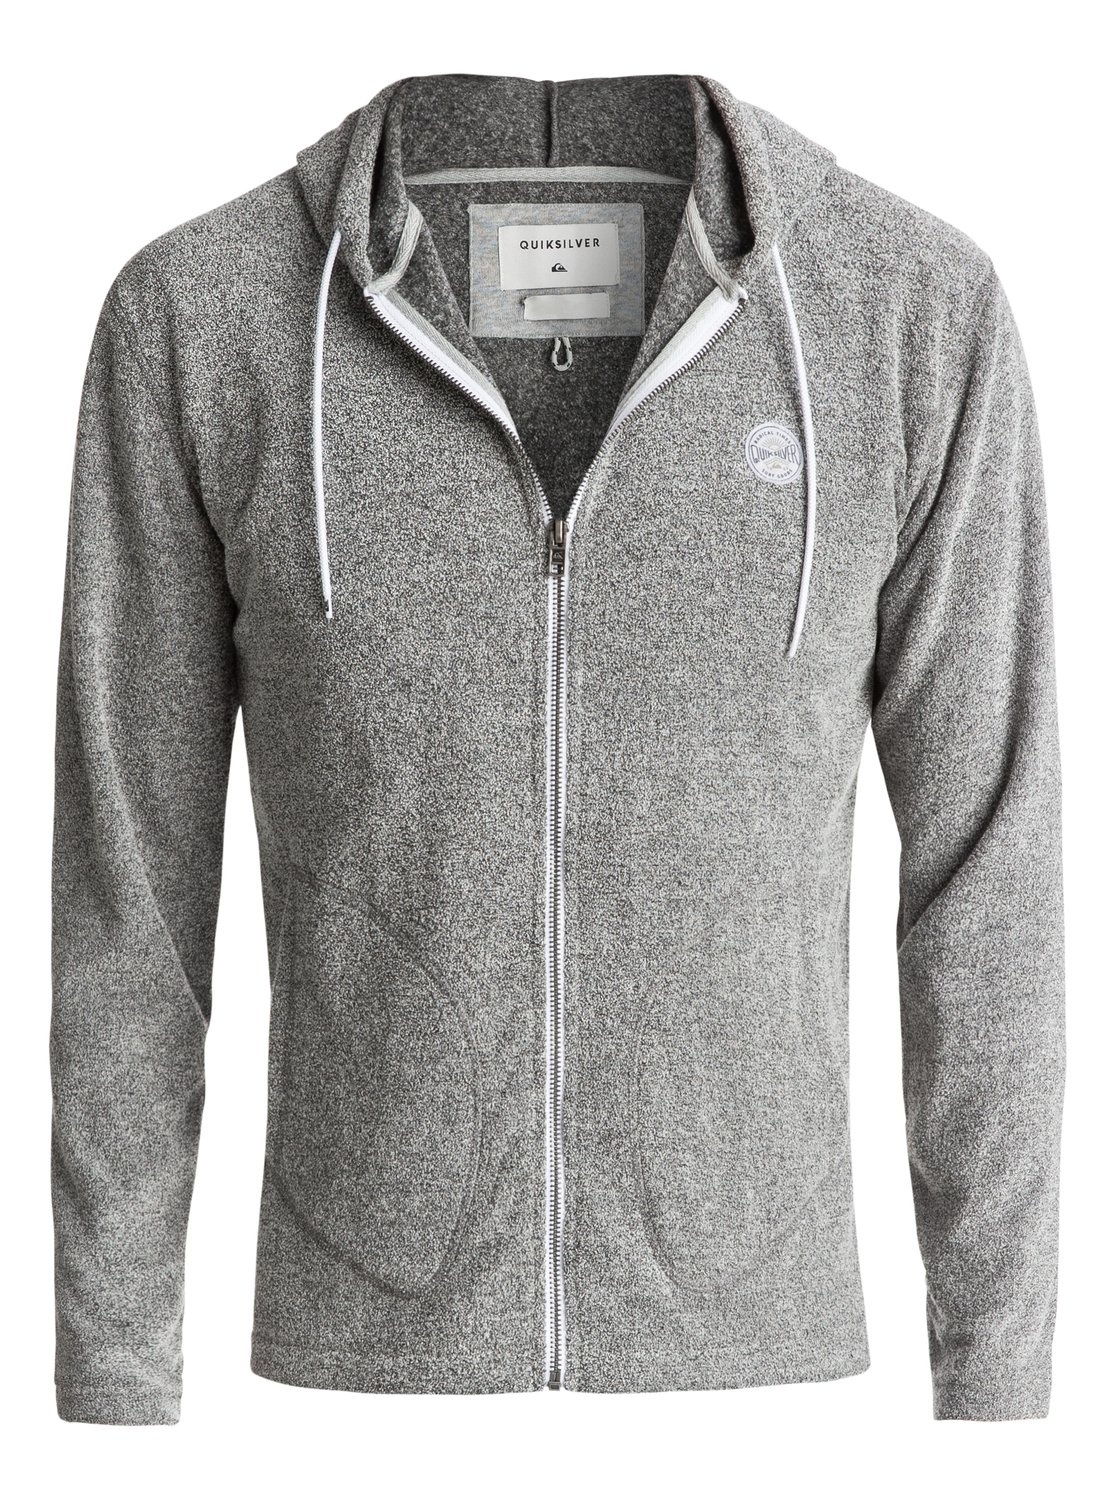 After Surf - sweat à capuche ultra-doux pour homme - quiksilver